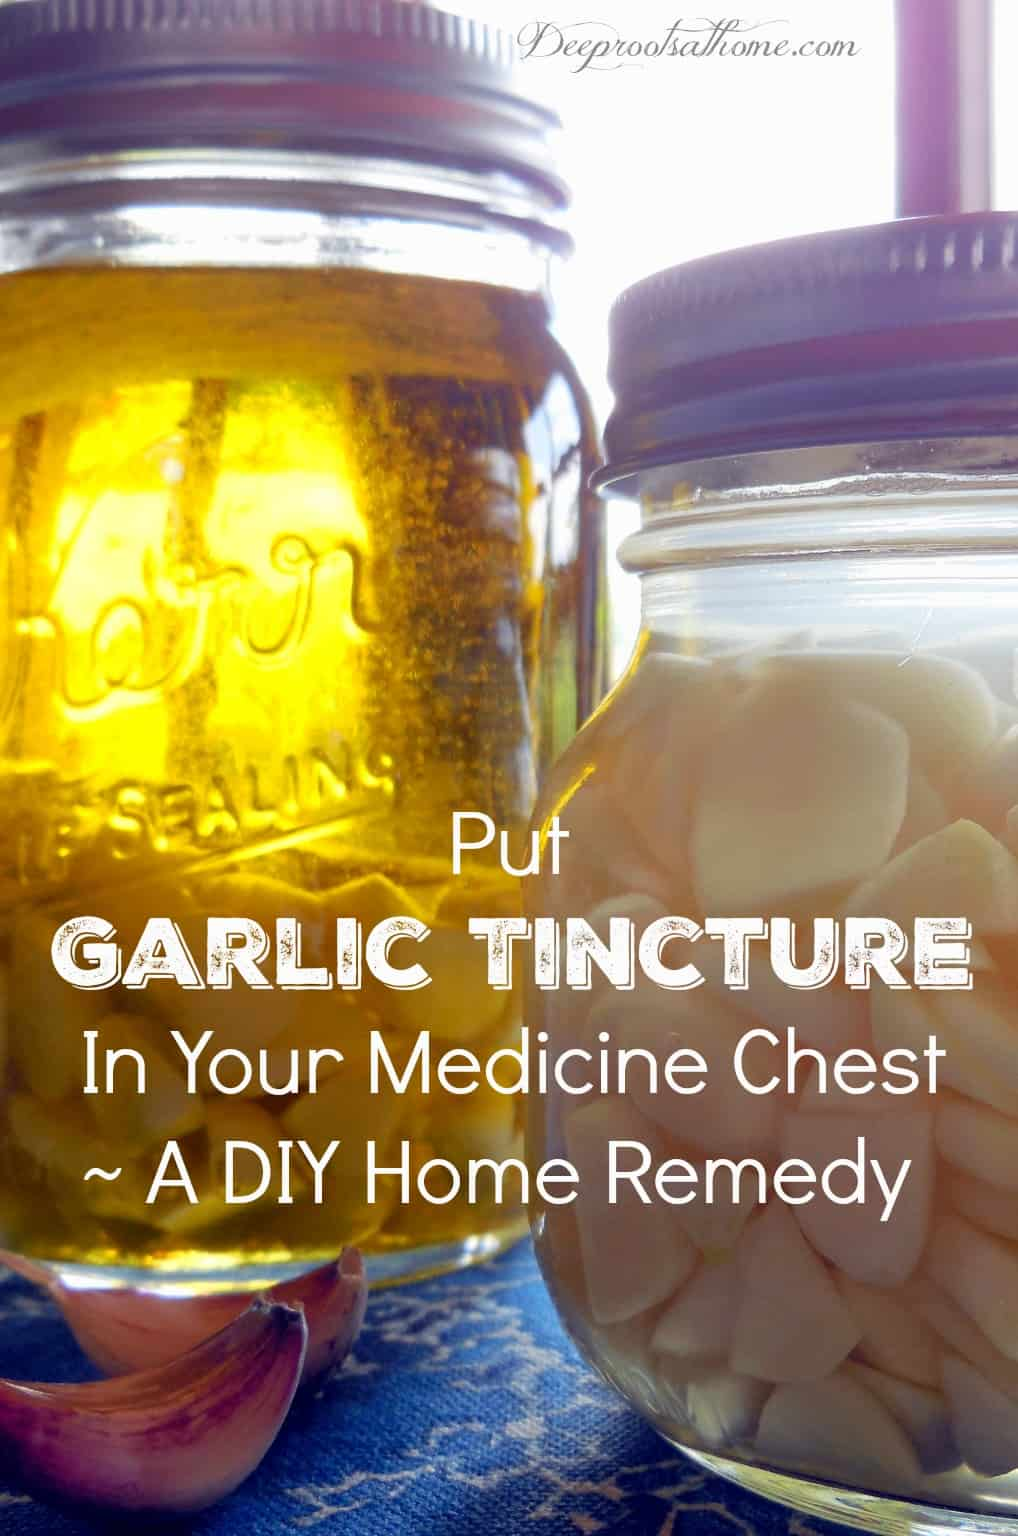 Put Garlic Tincture In Your Medicine Chest~ A DIY Home Remedy. 2 garlic tinctures - one in olive oil and the other in vodka.